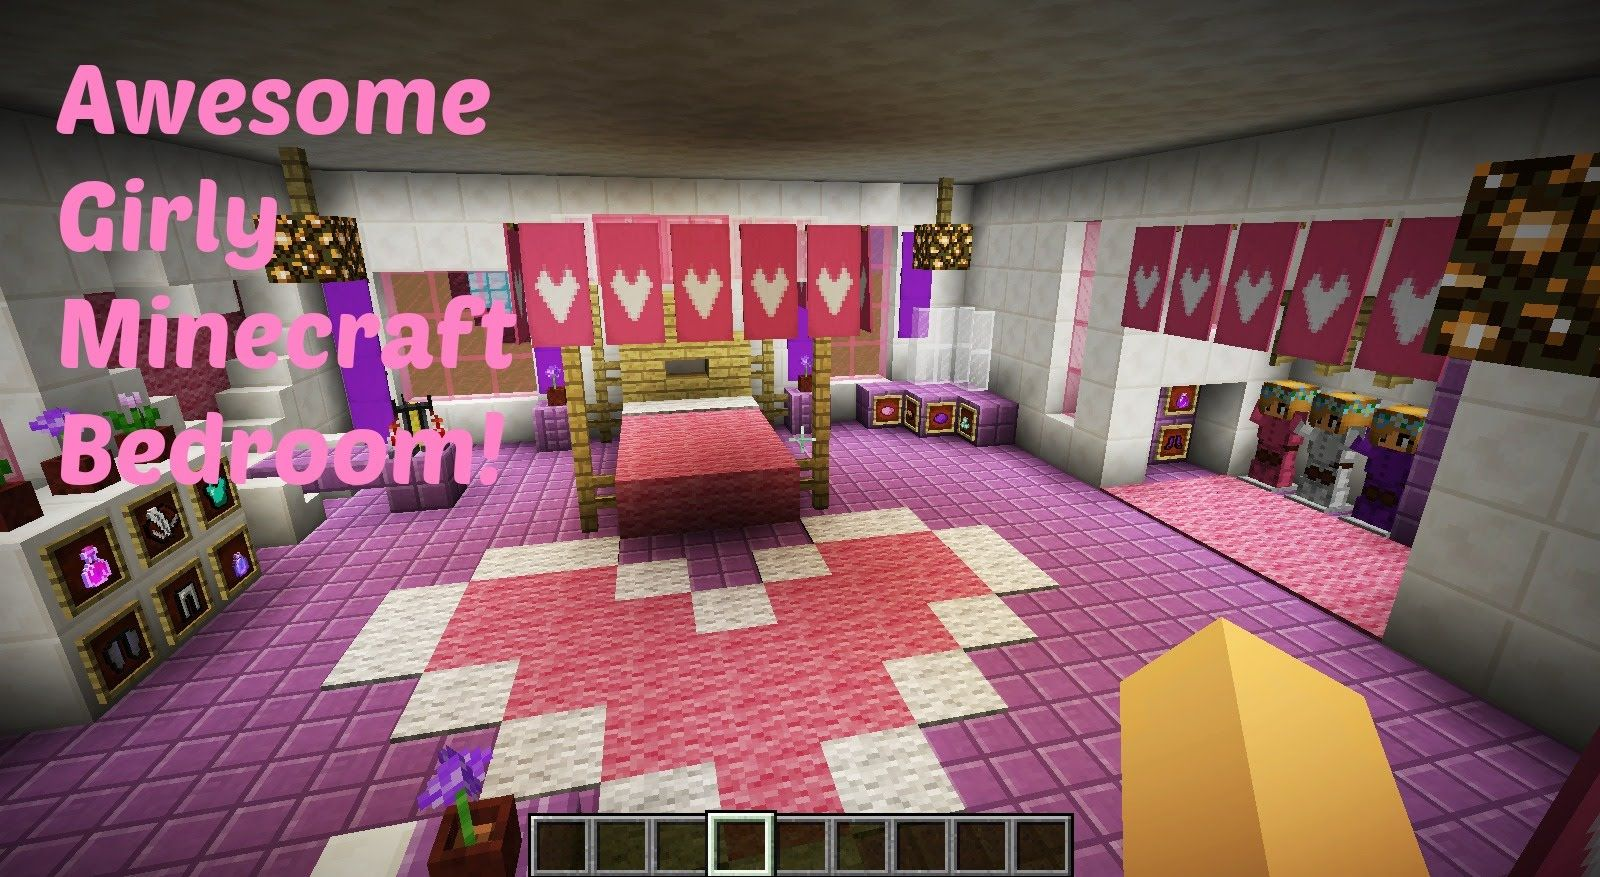 Awesome Girly Minecraft Bedroom Youtube Minecraft Bedroom Minecraft Room Minecraft Bedroom Girls